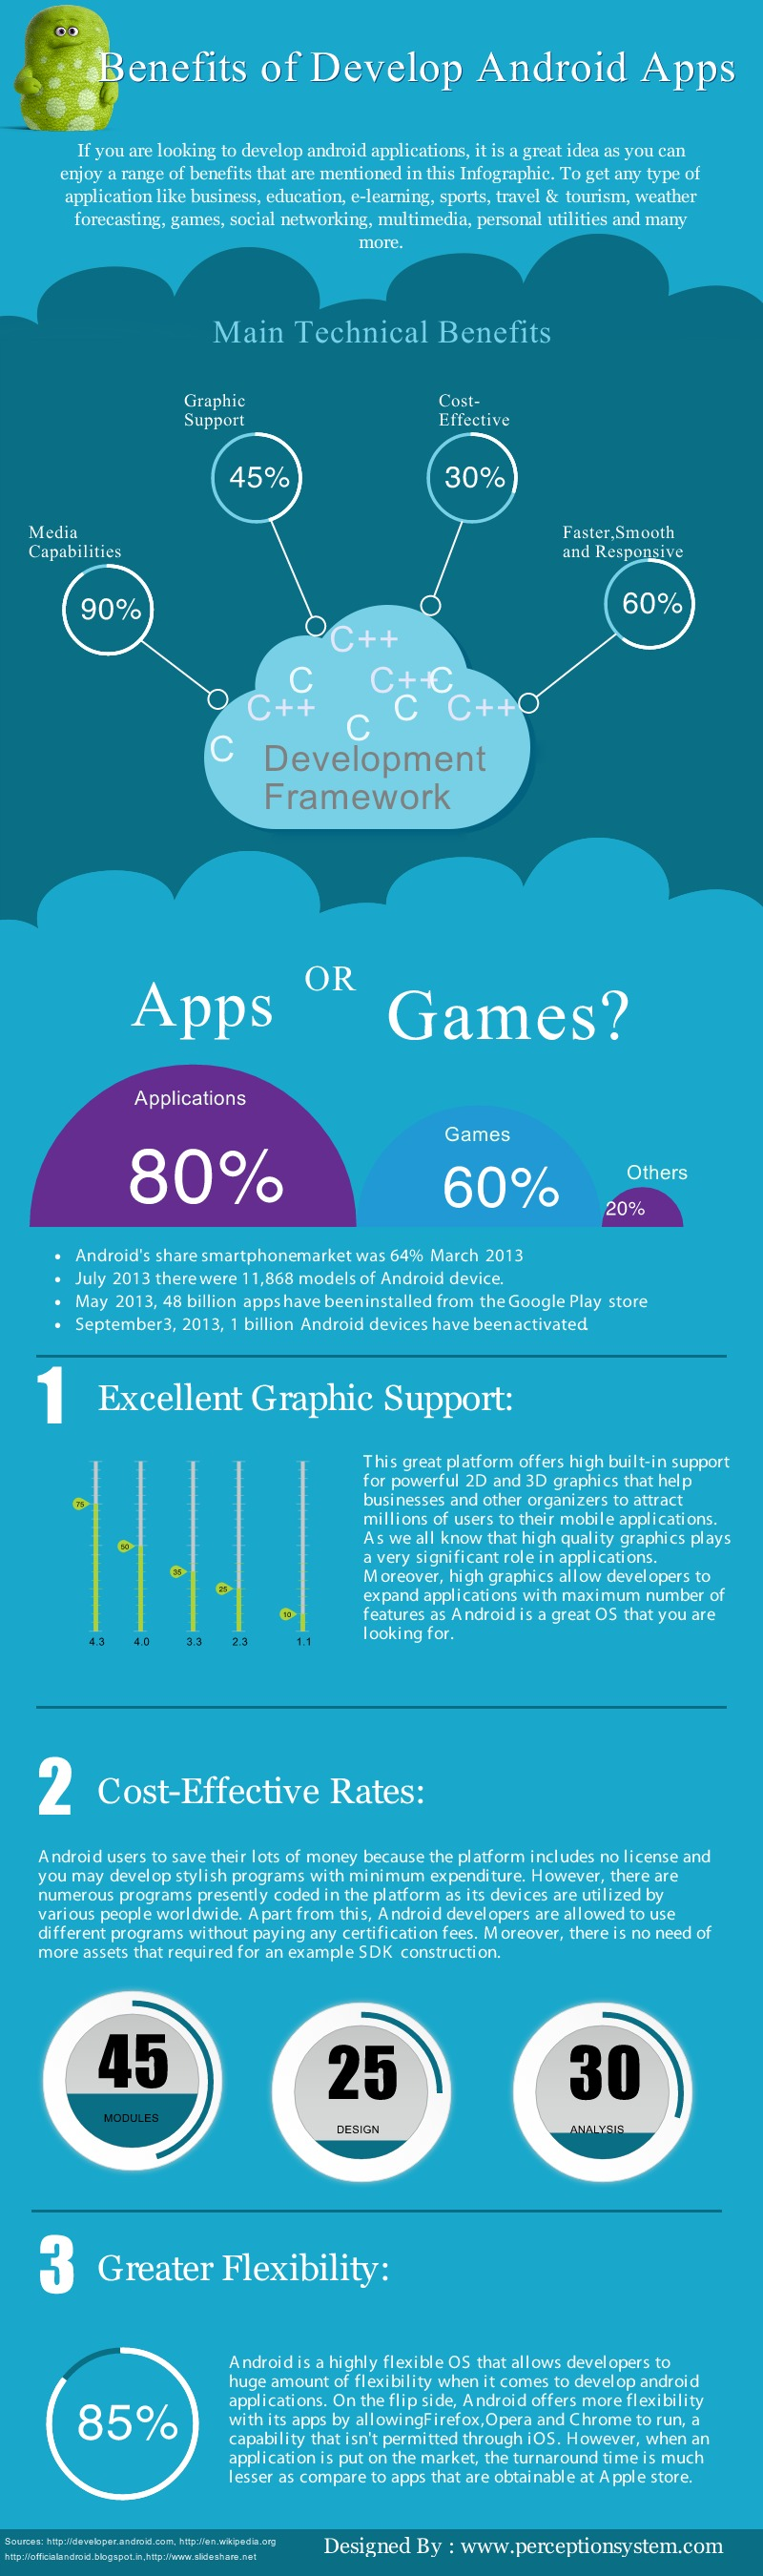 benefits-of-developing-android-apps_5256446b3cf41